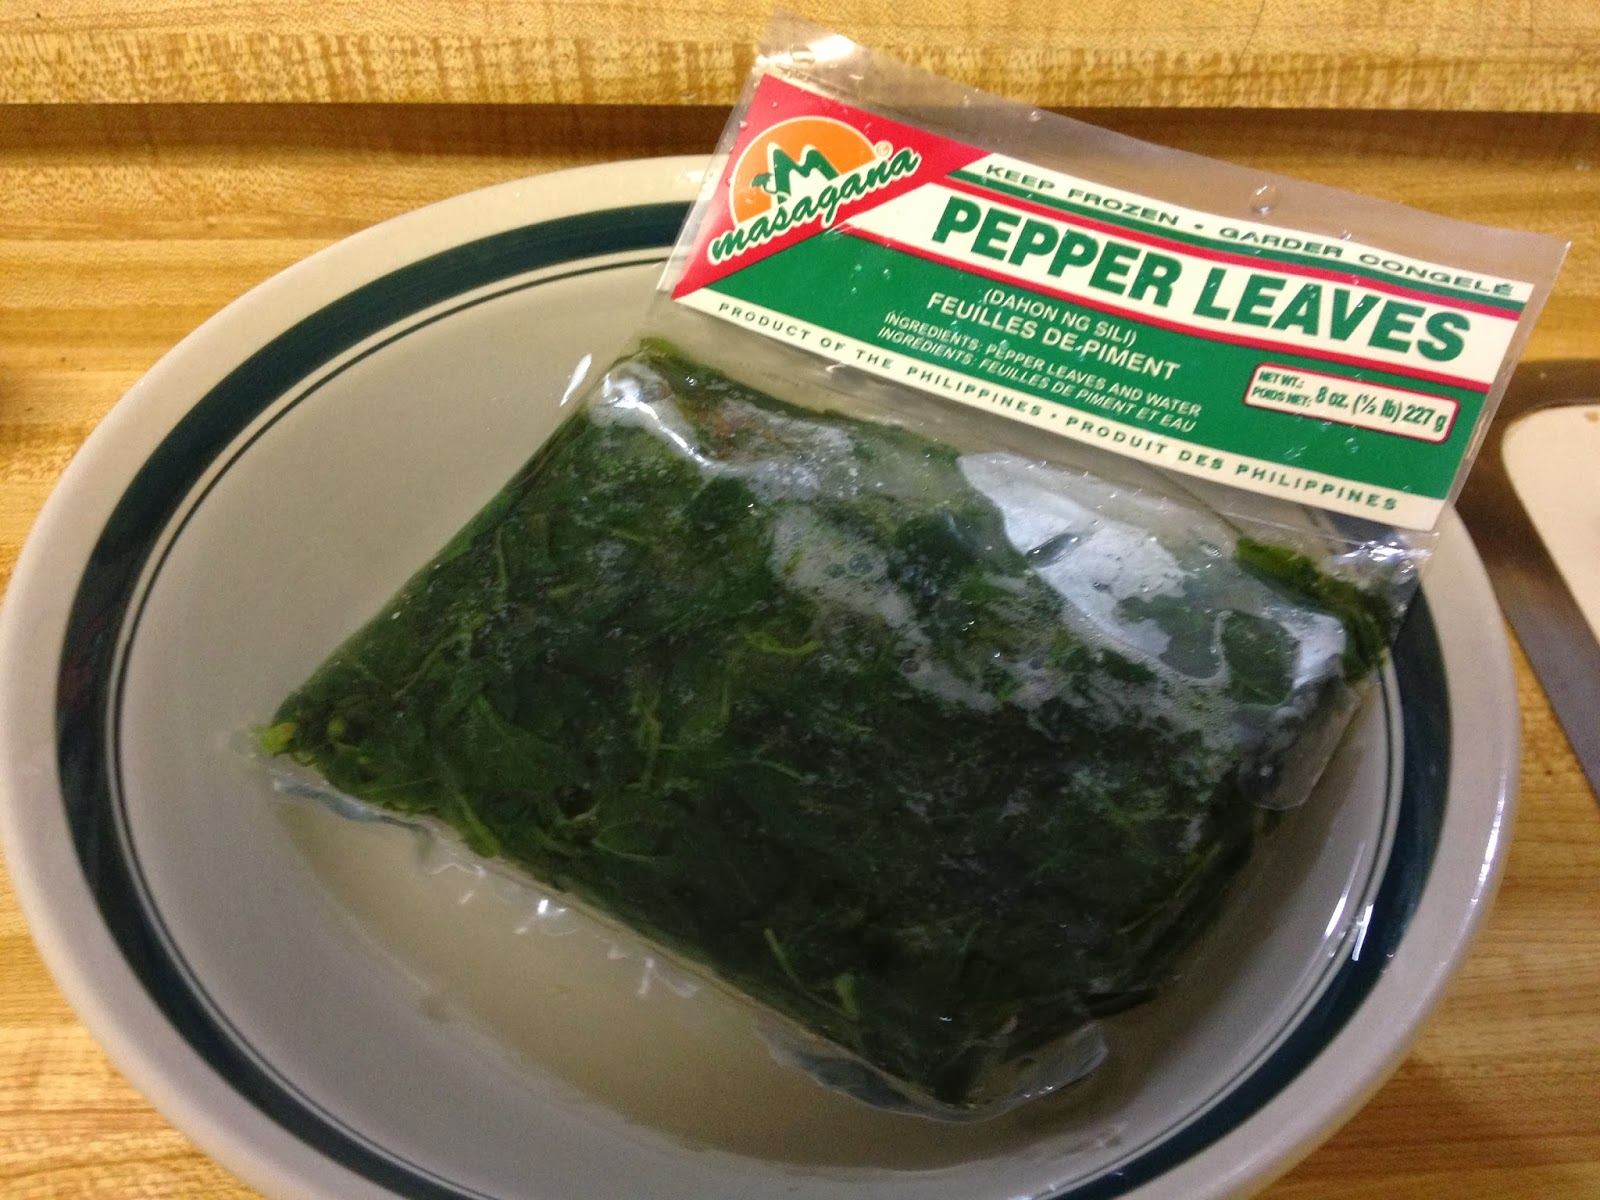 Hot Pepper Leaves